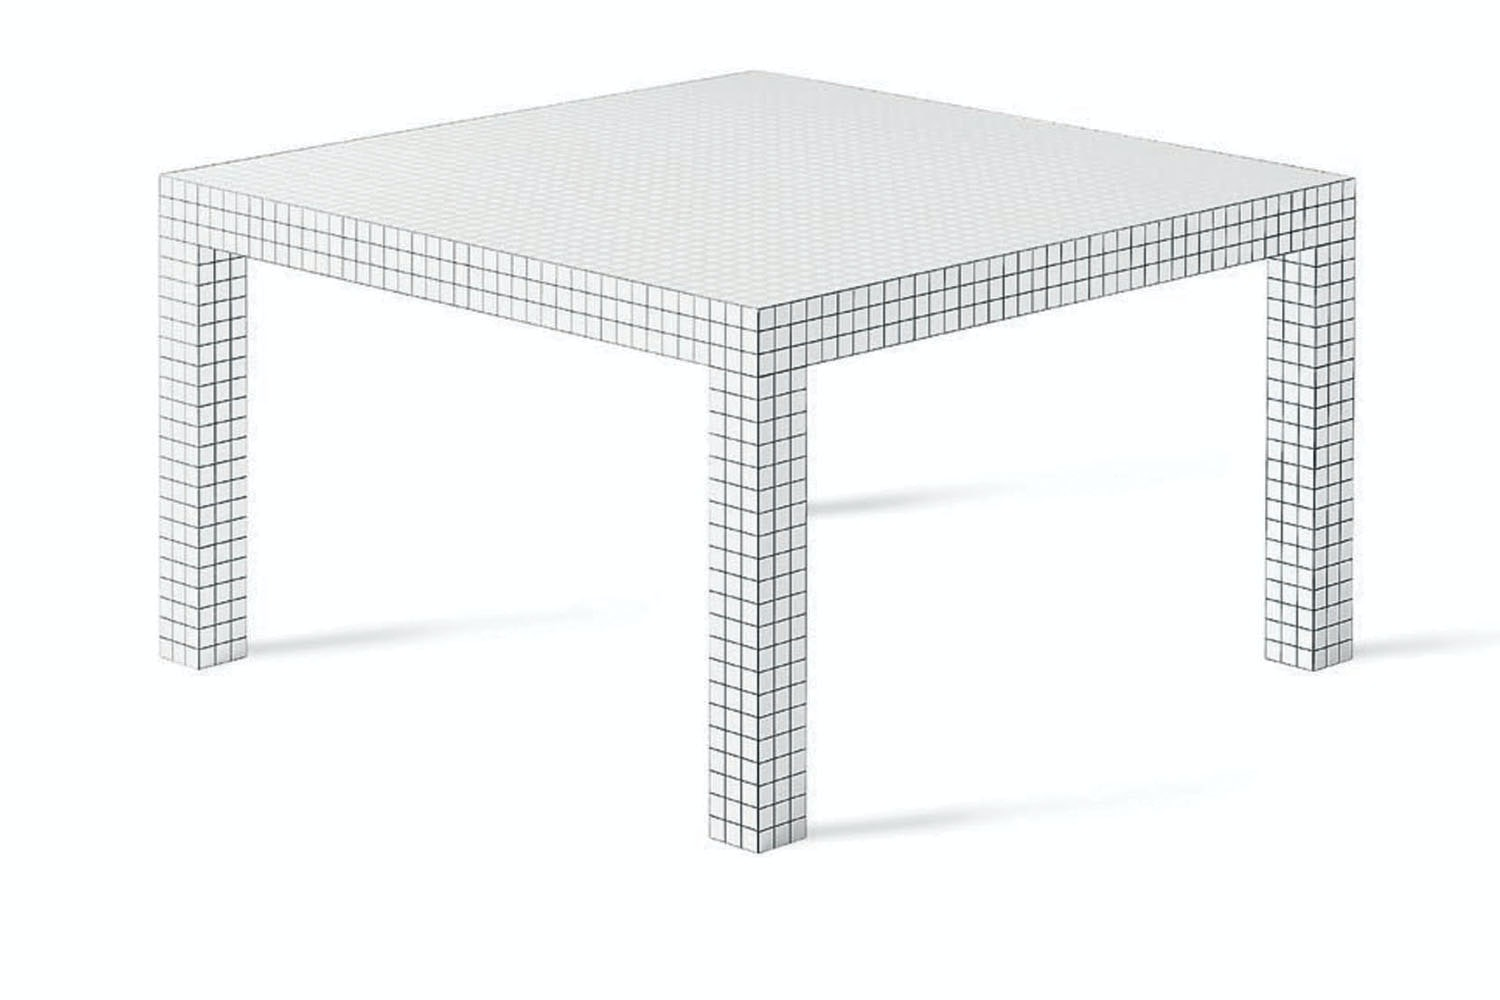 Quaderna 2600 Table by Superstudio for Zanotta